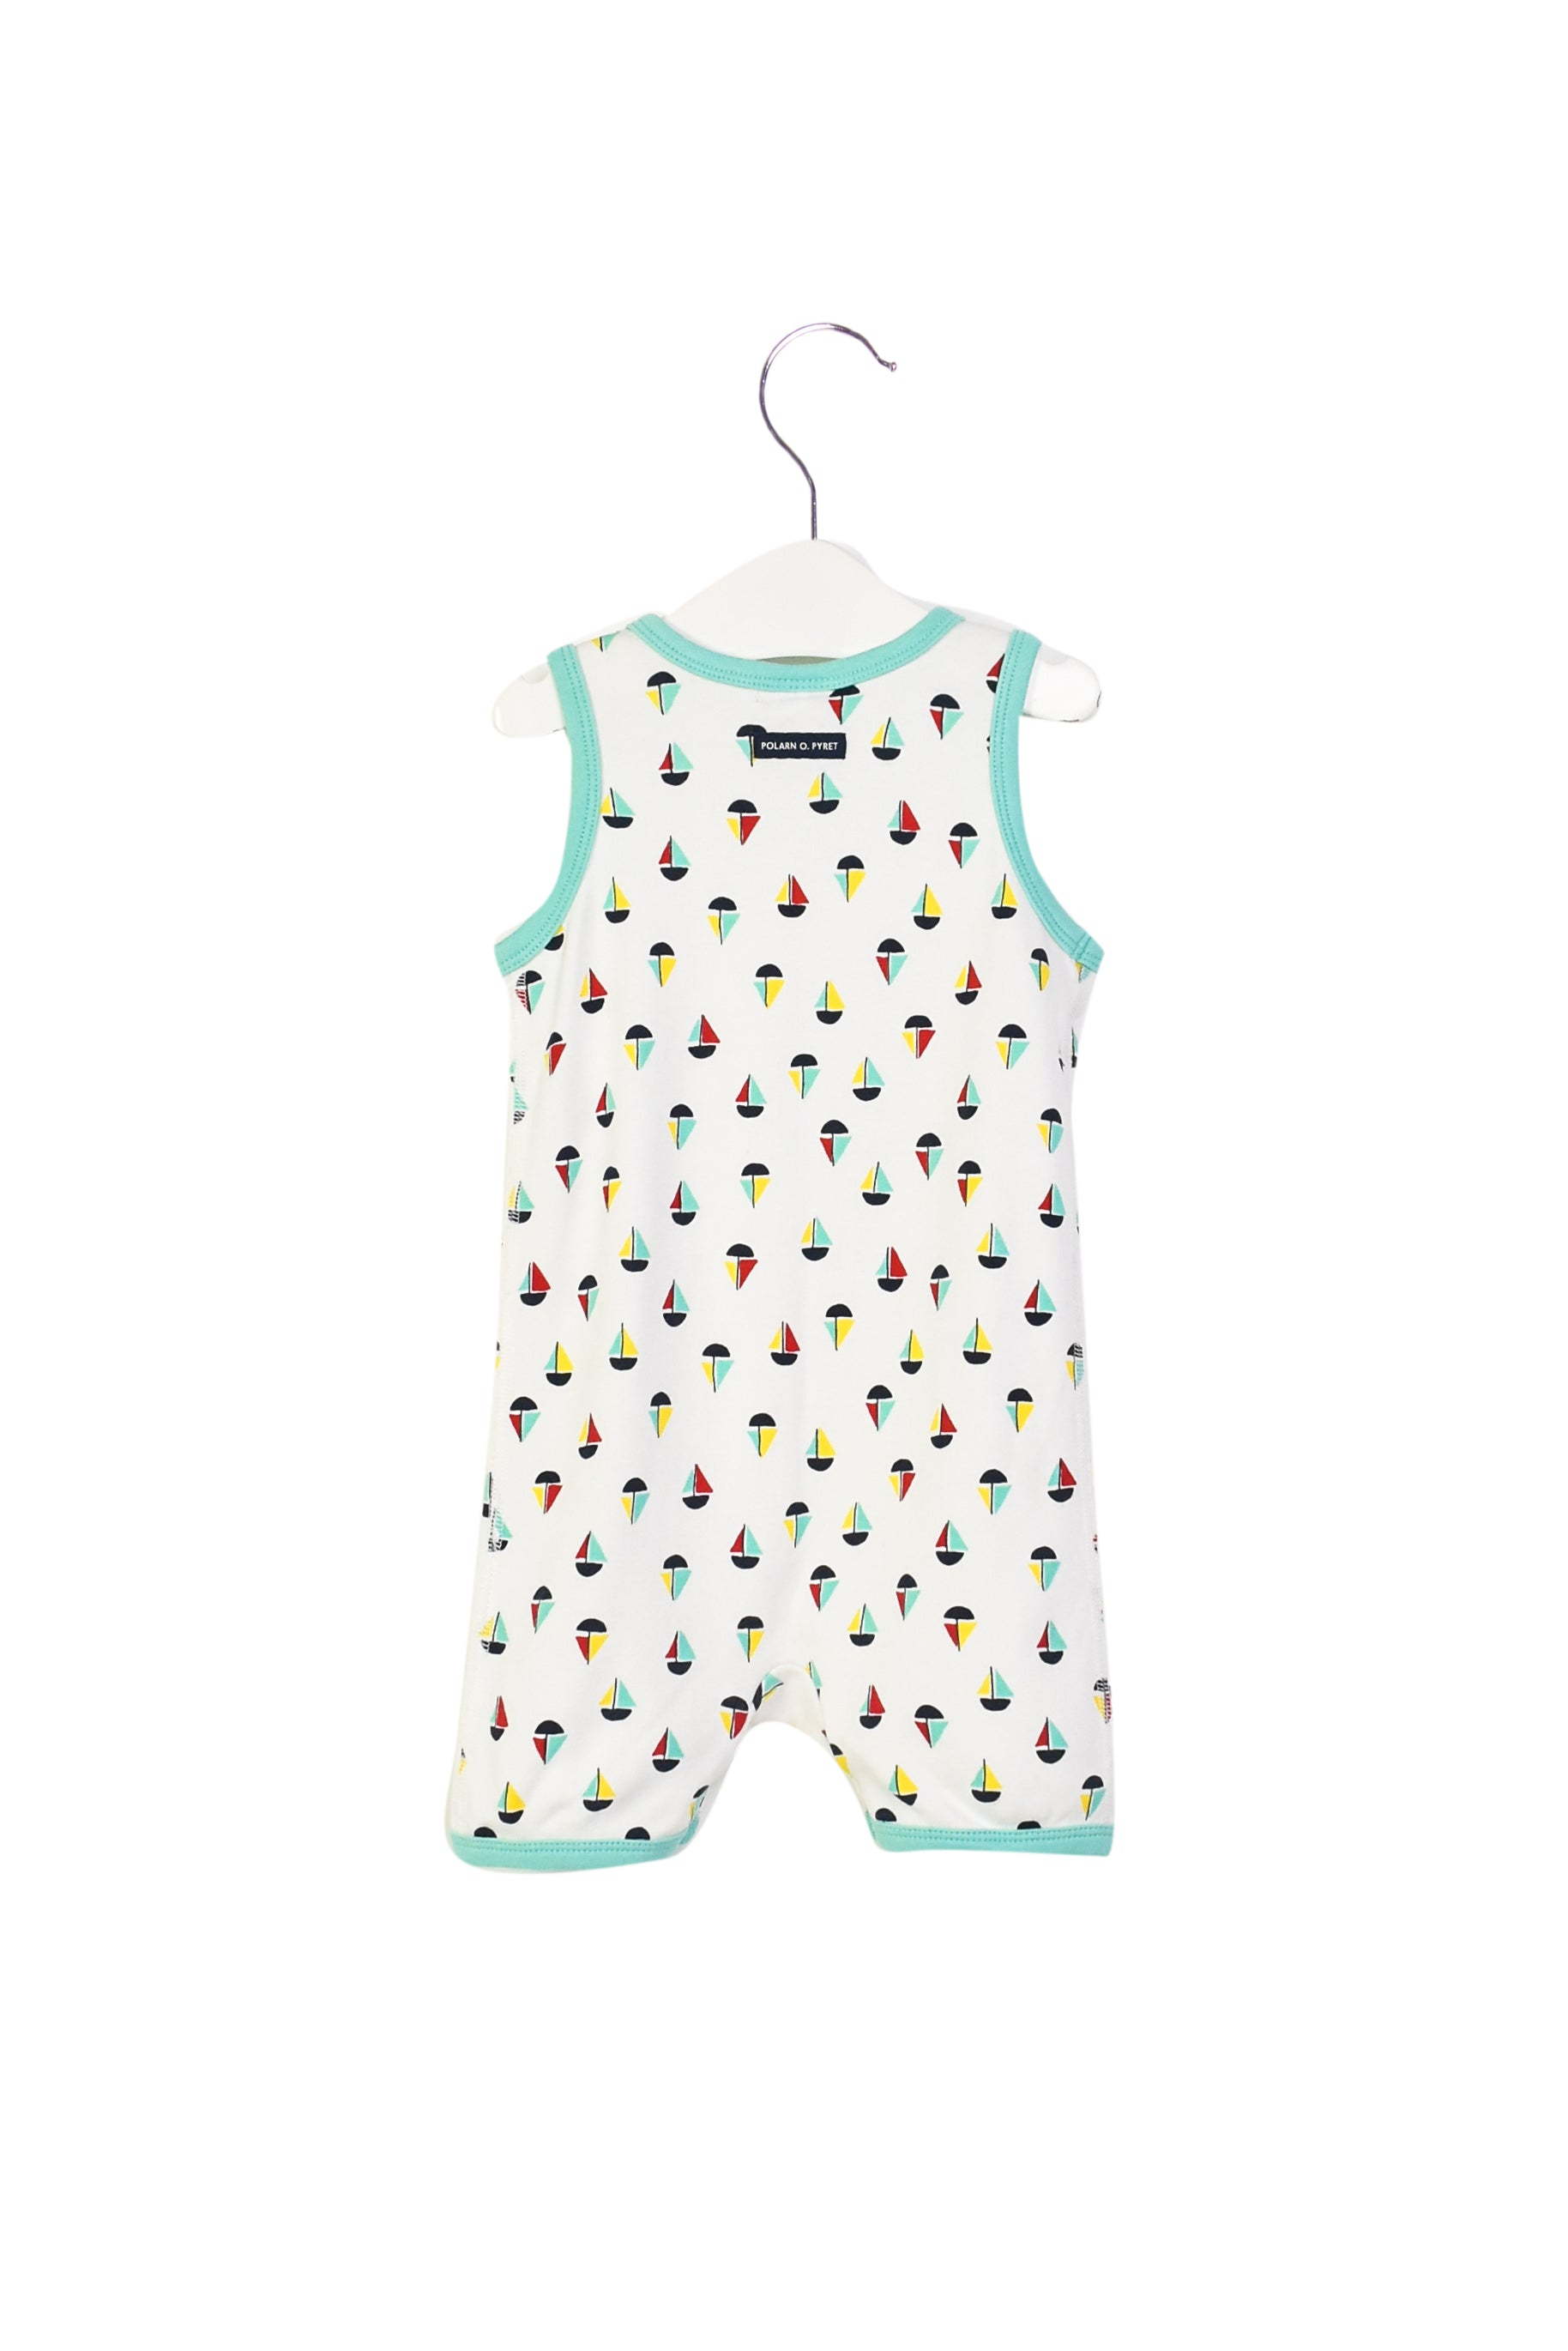 10013250 Polarn O. Pyret Baby~Romper 4-6M at Retykle